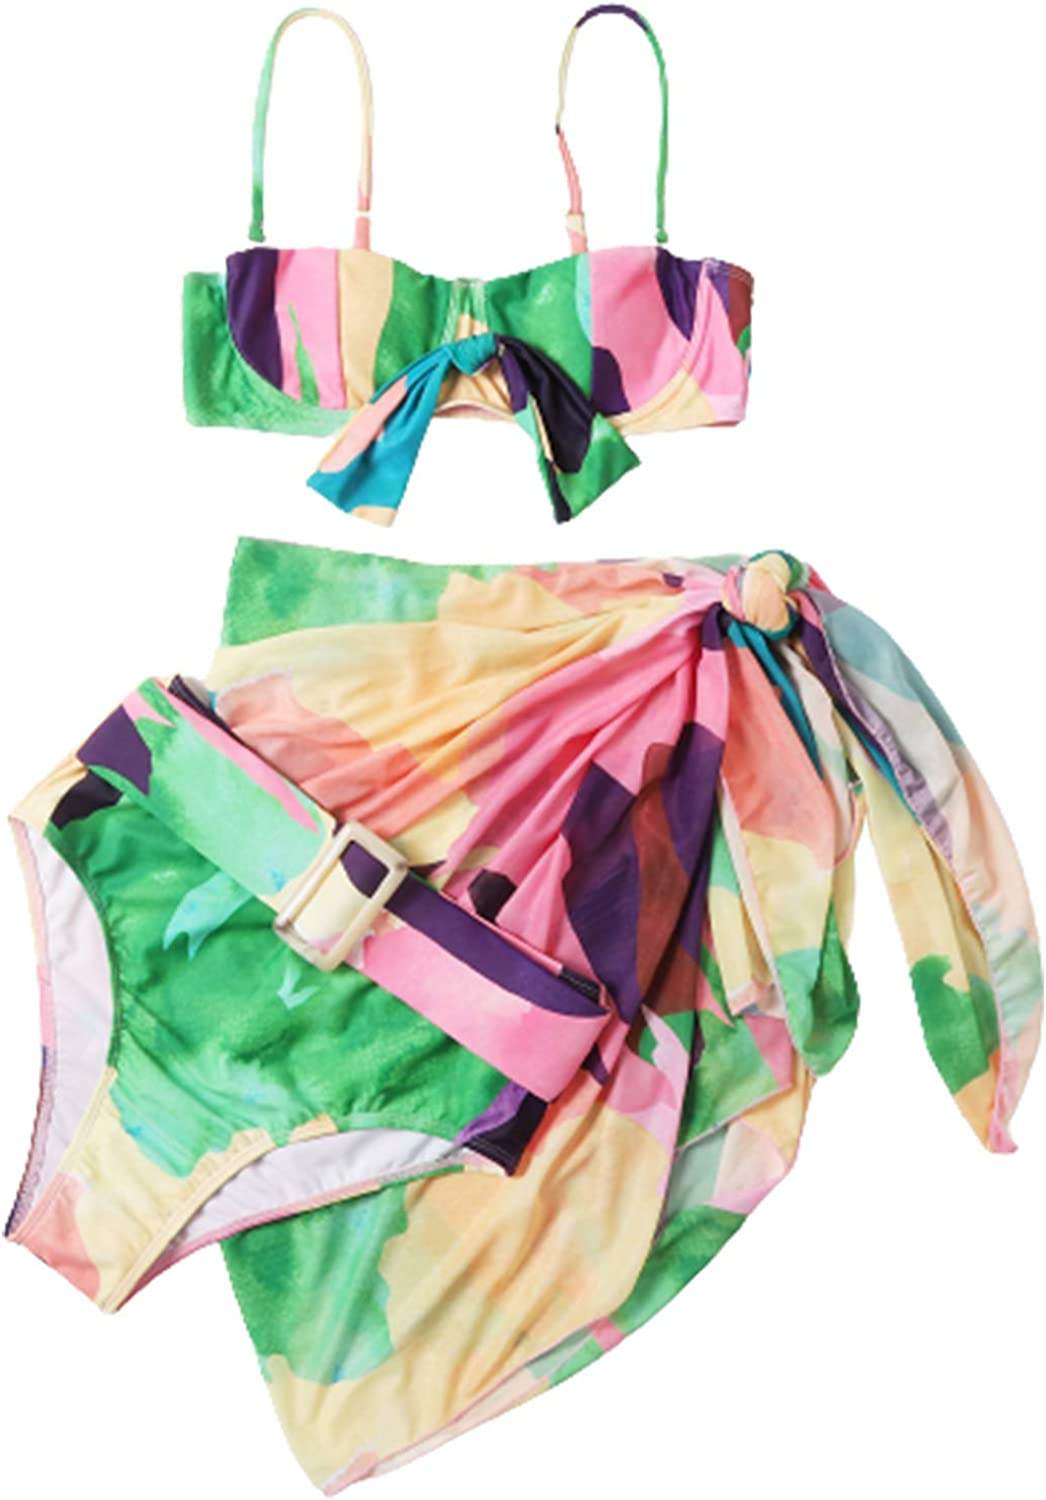 SOLY HUX Women's Color Block High Waisted Bikini Bathing Suits with Cover Up Beach Skirt 3 Piece Swimsuits Green Pink S